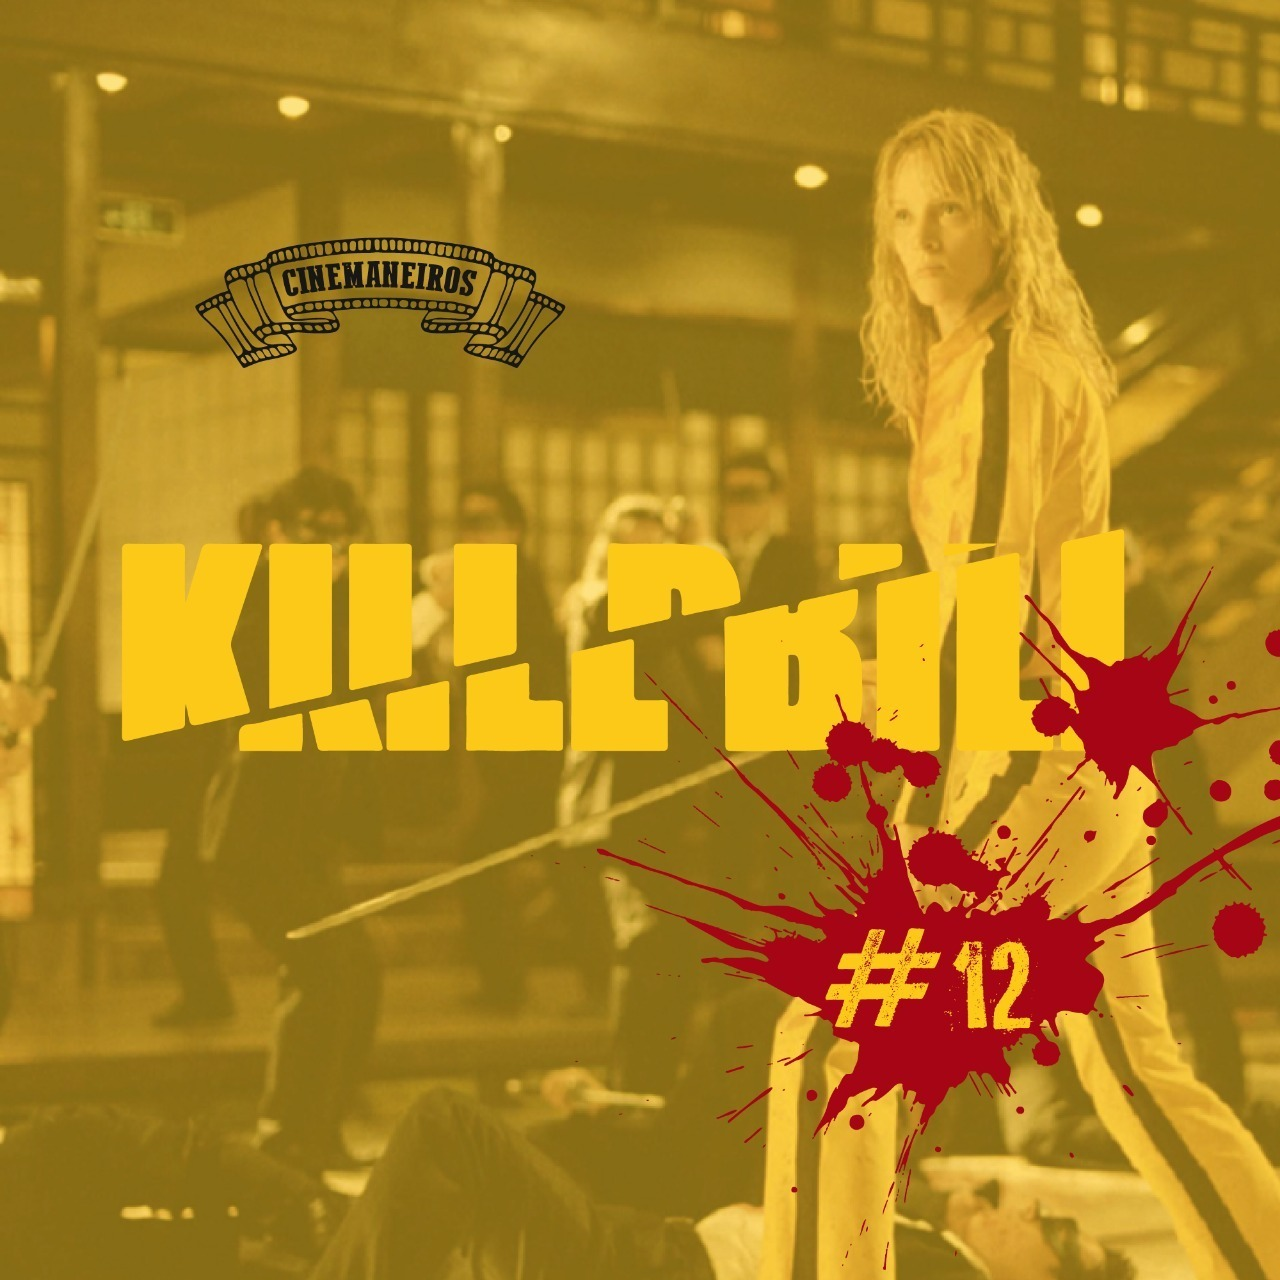 Cinemaneiros #12 Kill Bill Vol. 1 & 2